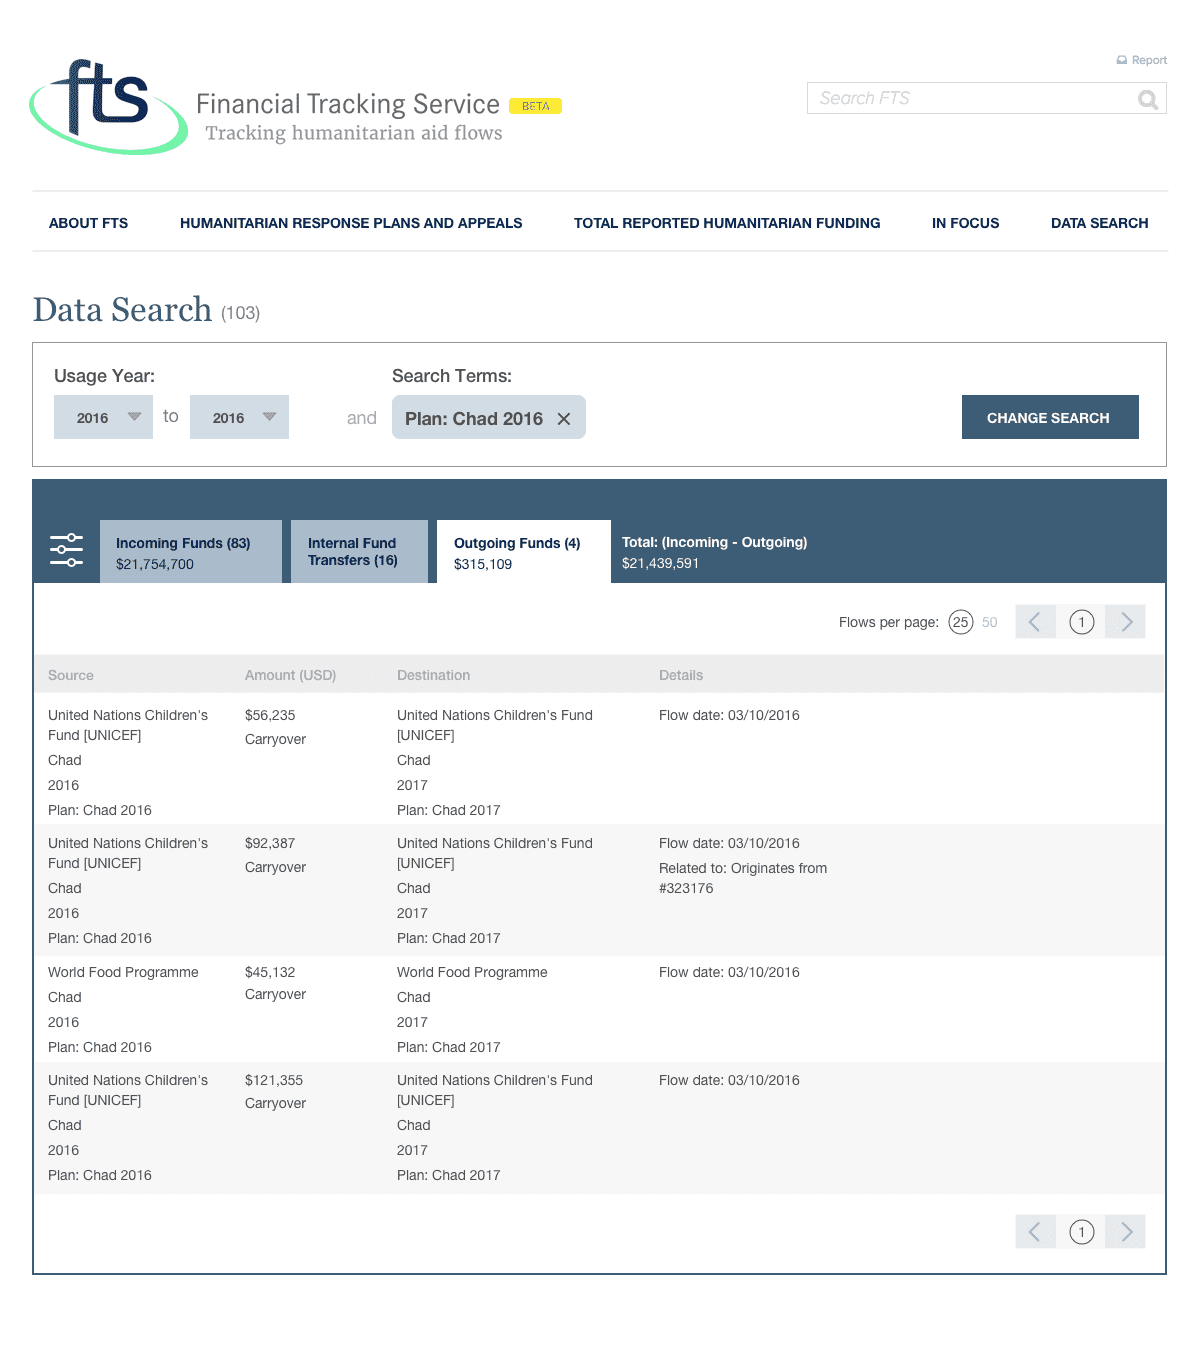 Financial Tracking Service Data Search Tool